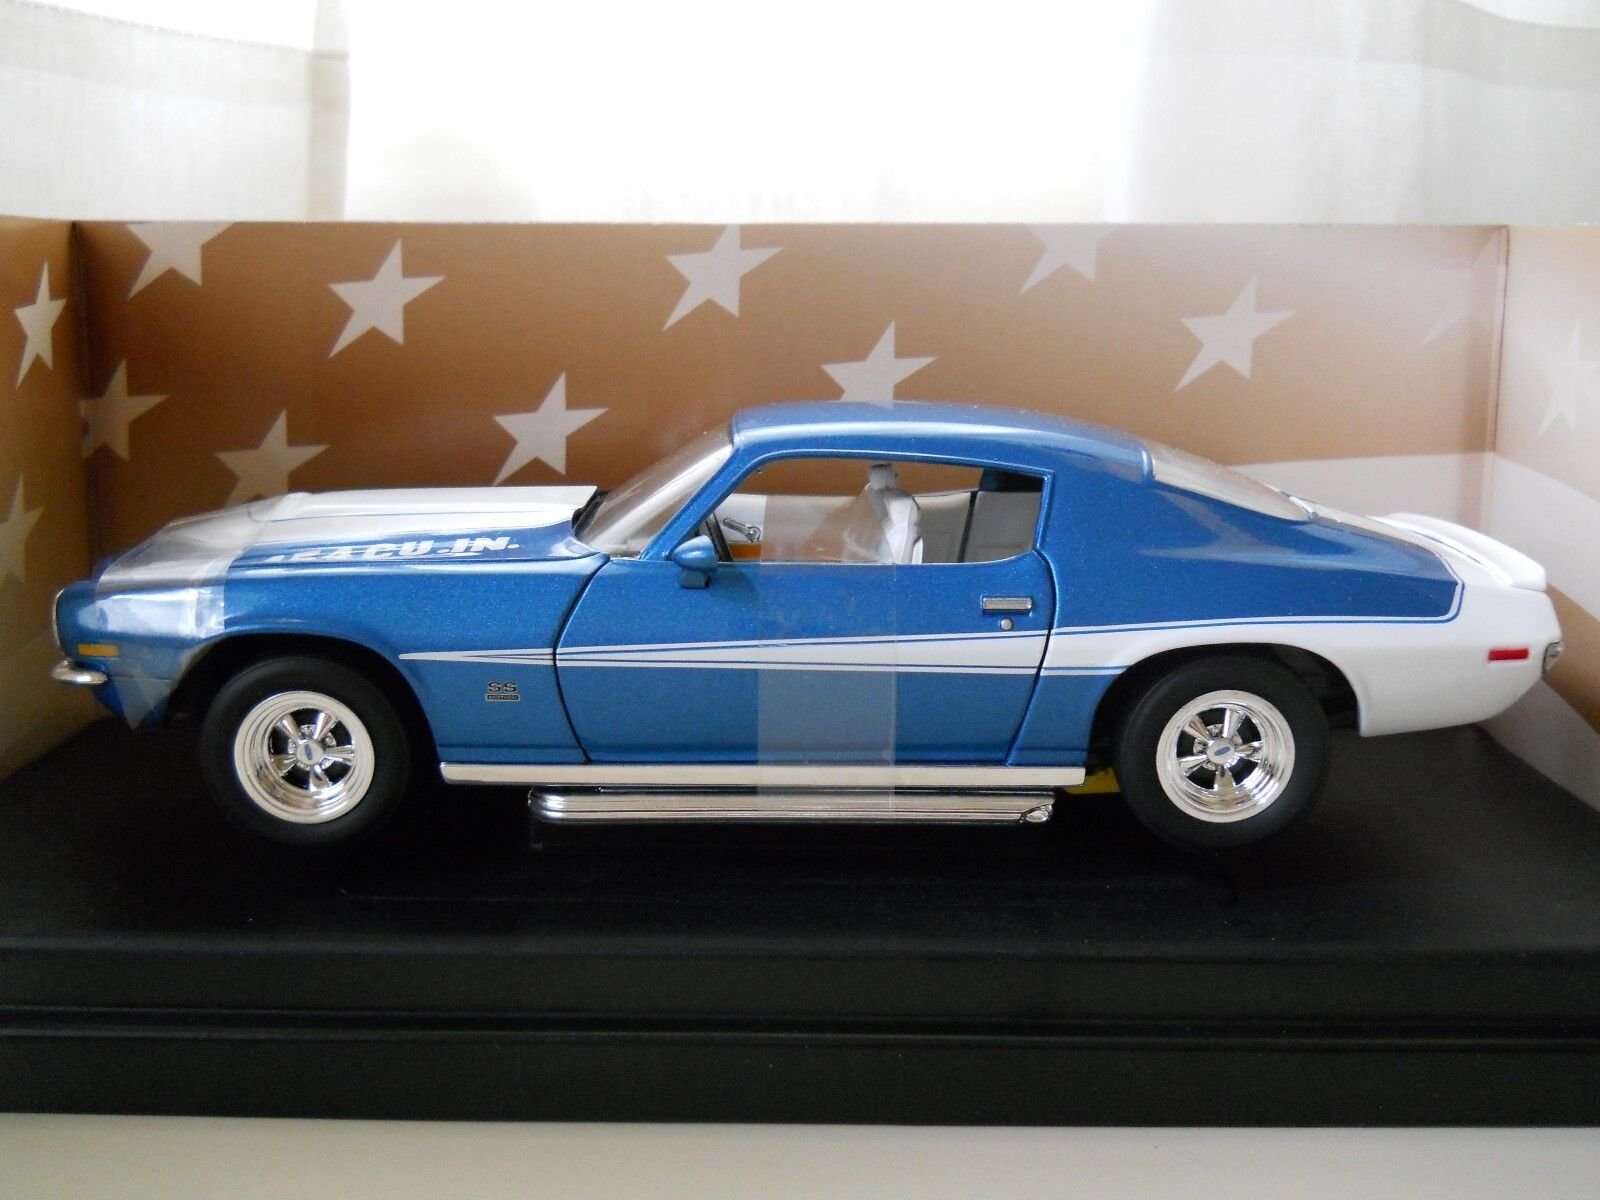 AMERICAN MUSCLE - RARE - 1970 BALDWIN MOTION CHEVROLET CAMARO - 1 18 DIECAST